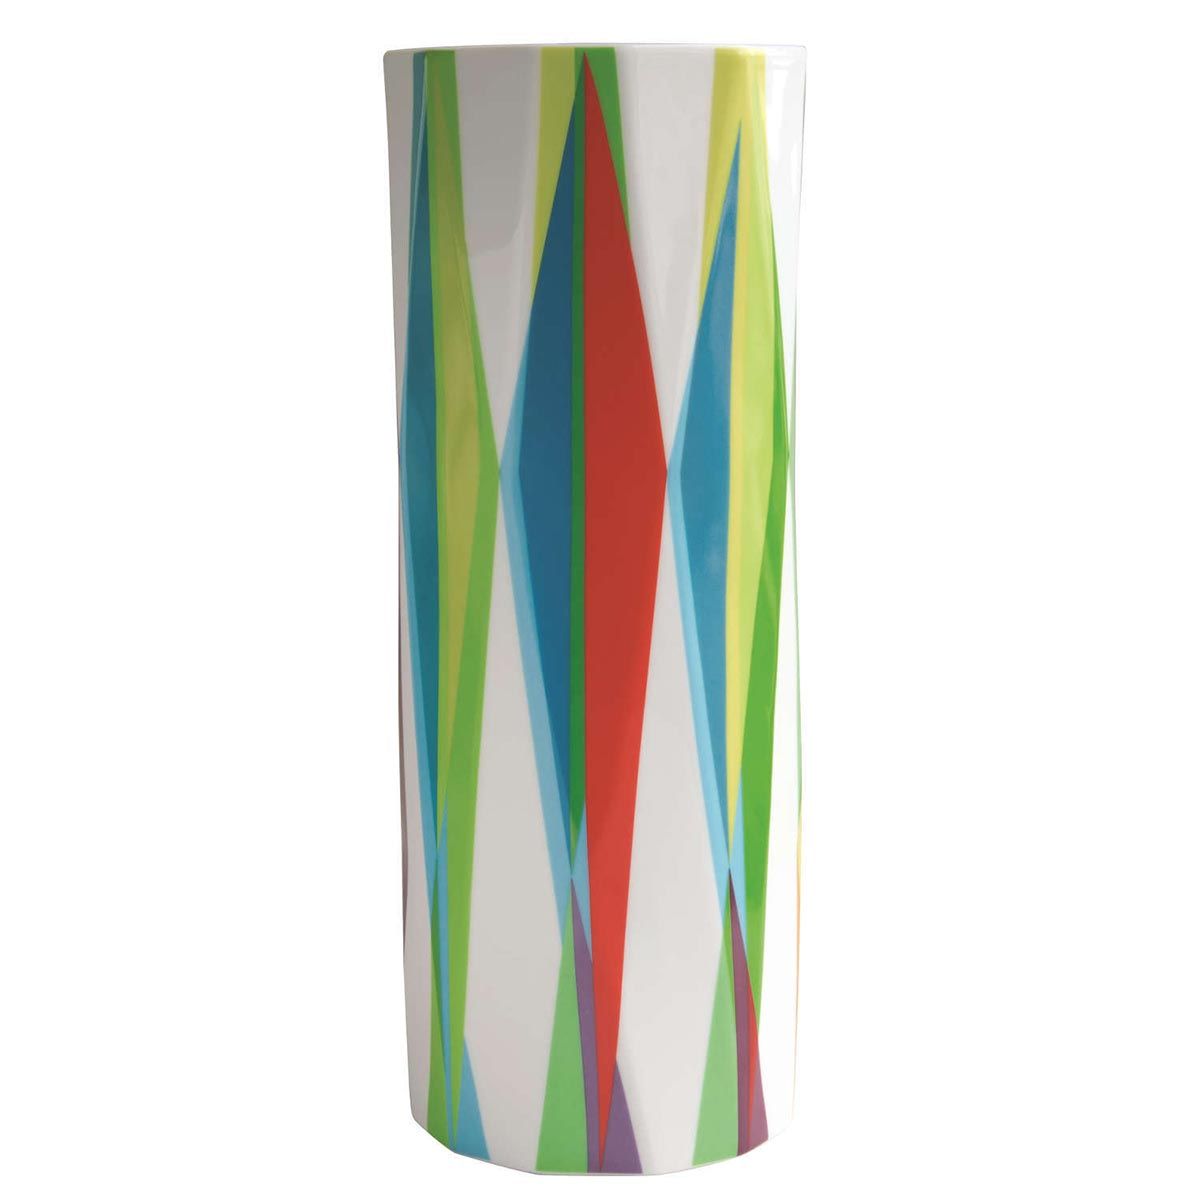 Vase Ohlala<br>H: 35.5 cm<br>Ohlala - Marco Mencacci (999 exemplaires)